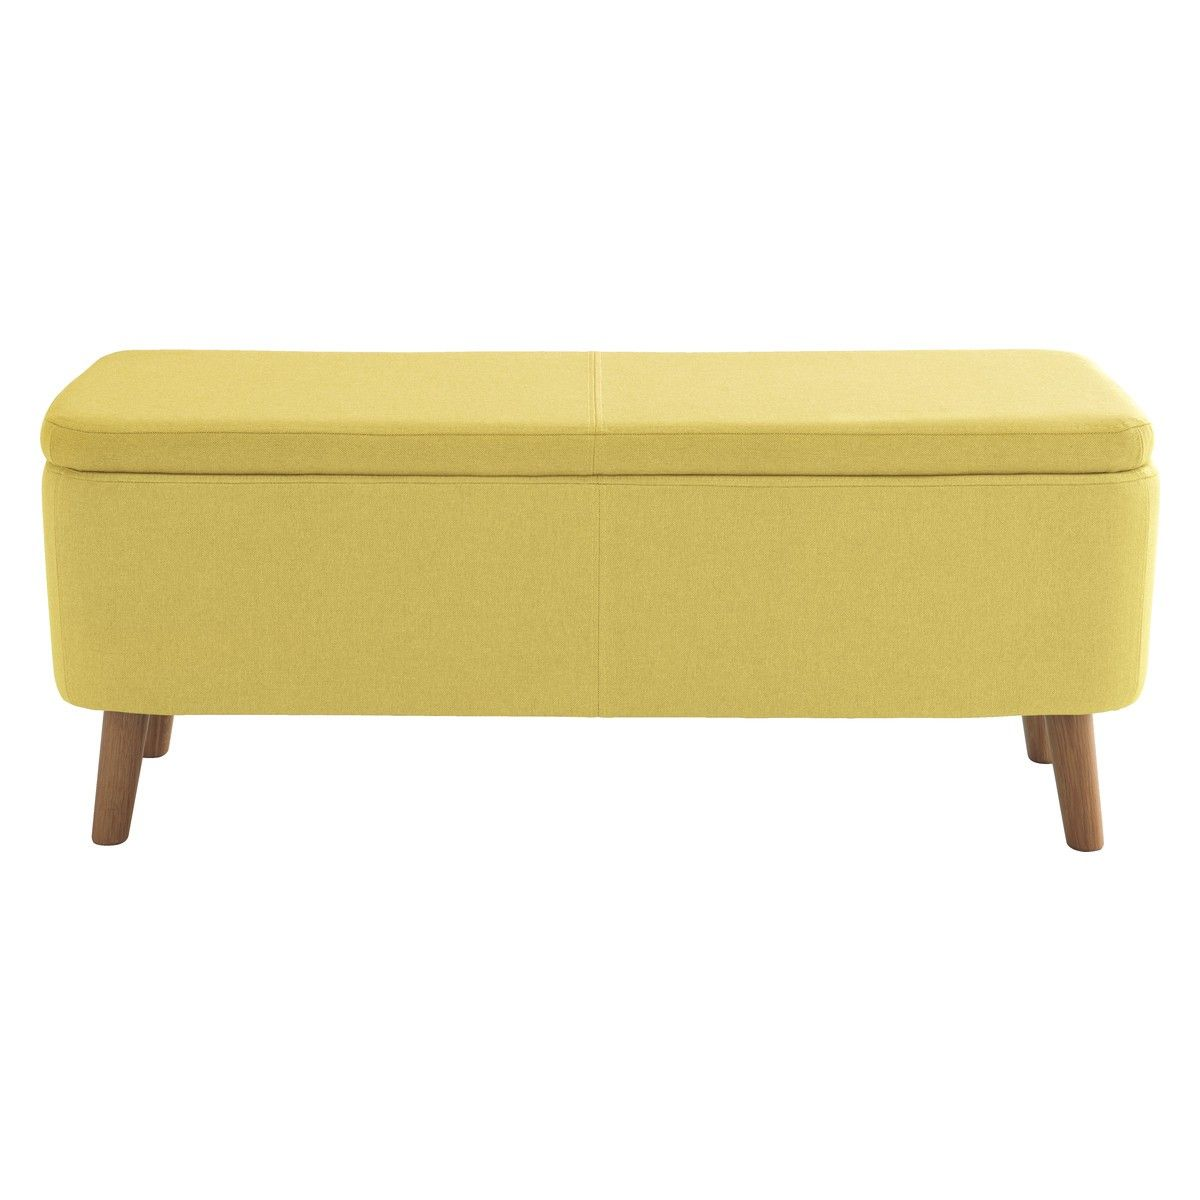 Jacobs Saffron Yellow Upholstered Storage Bench New